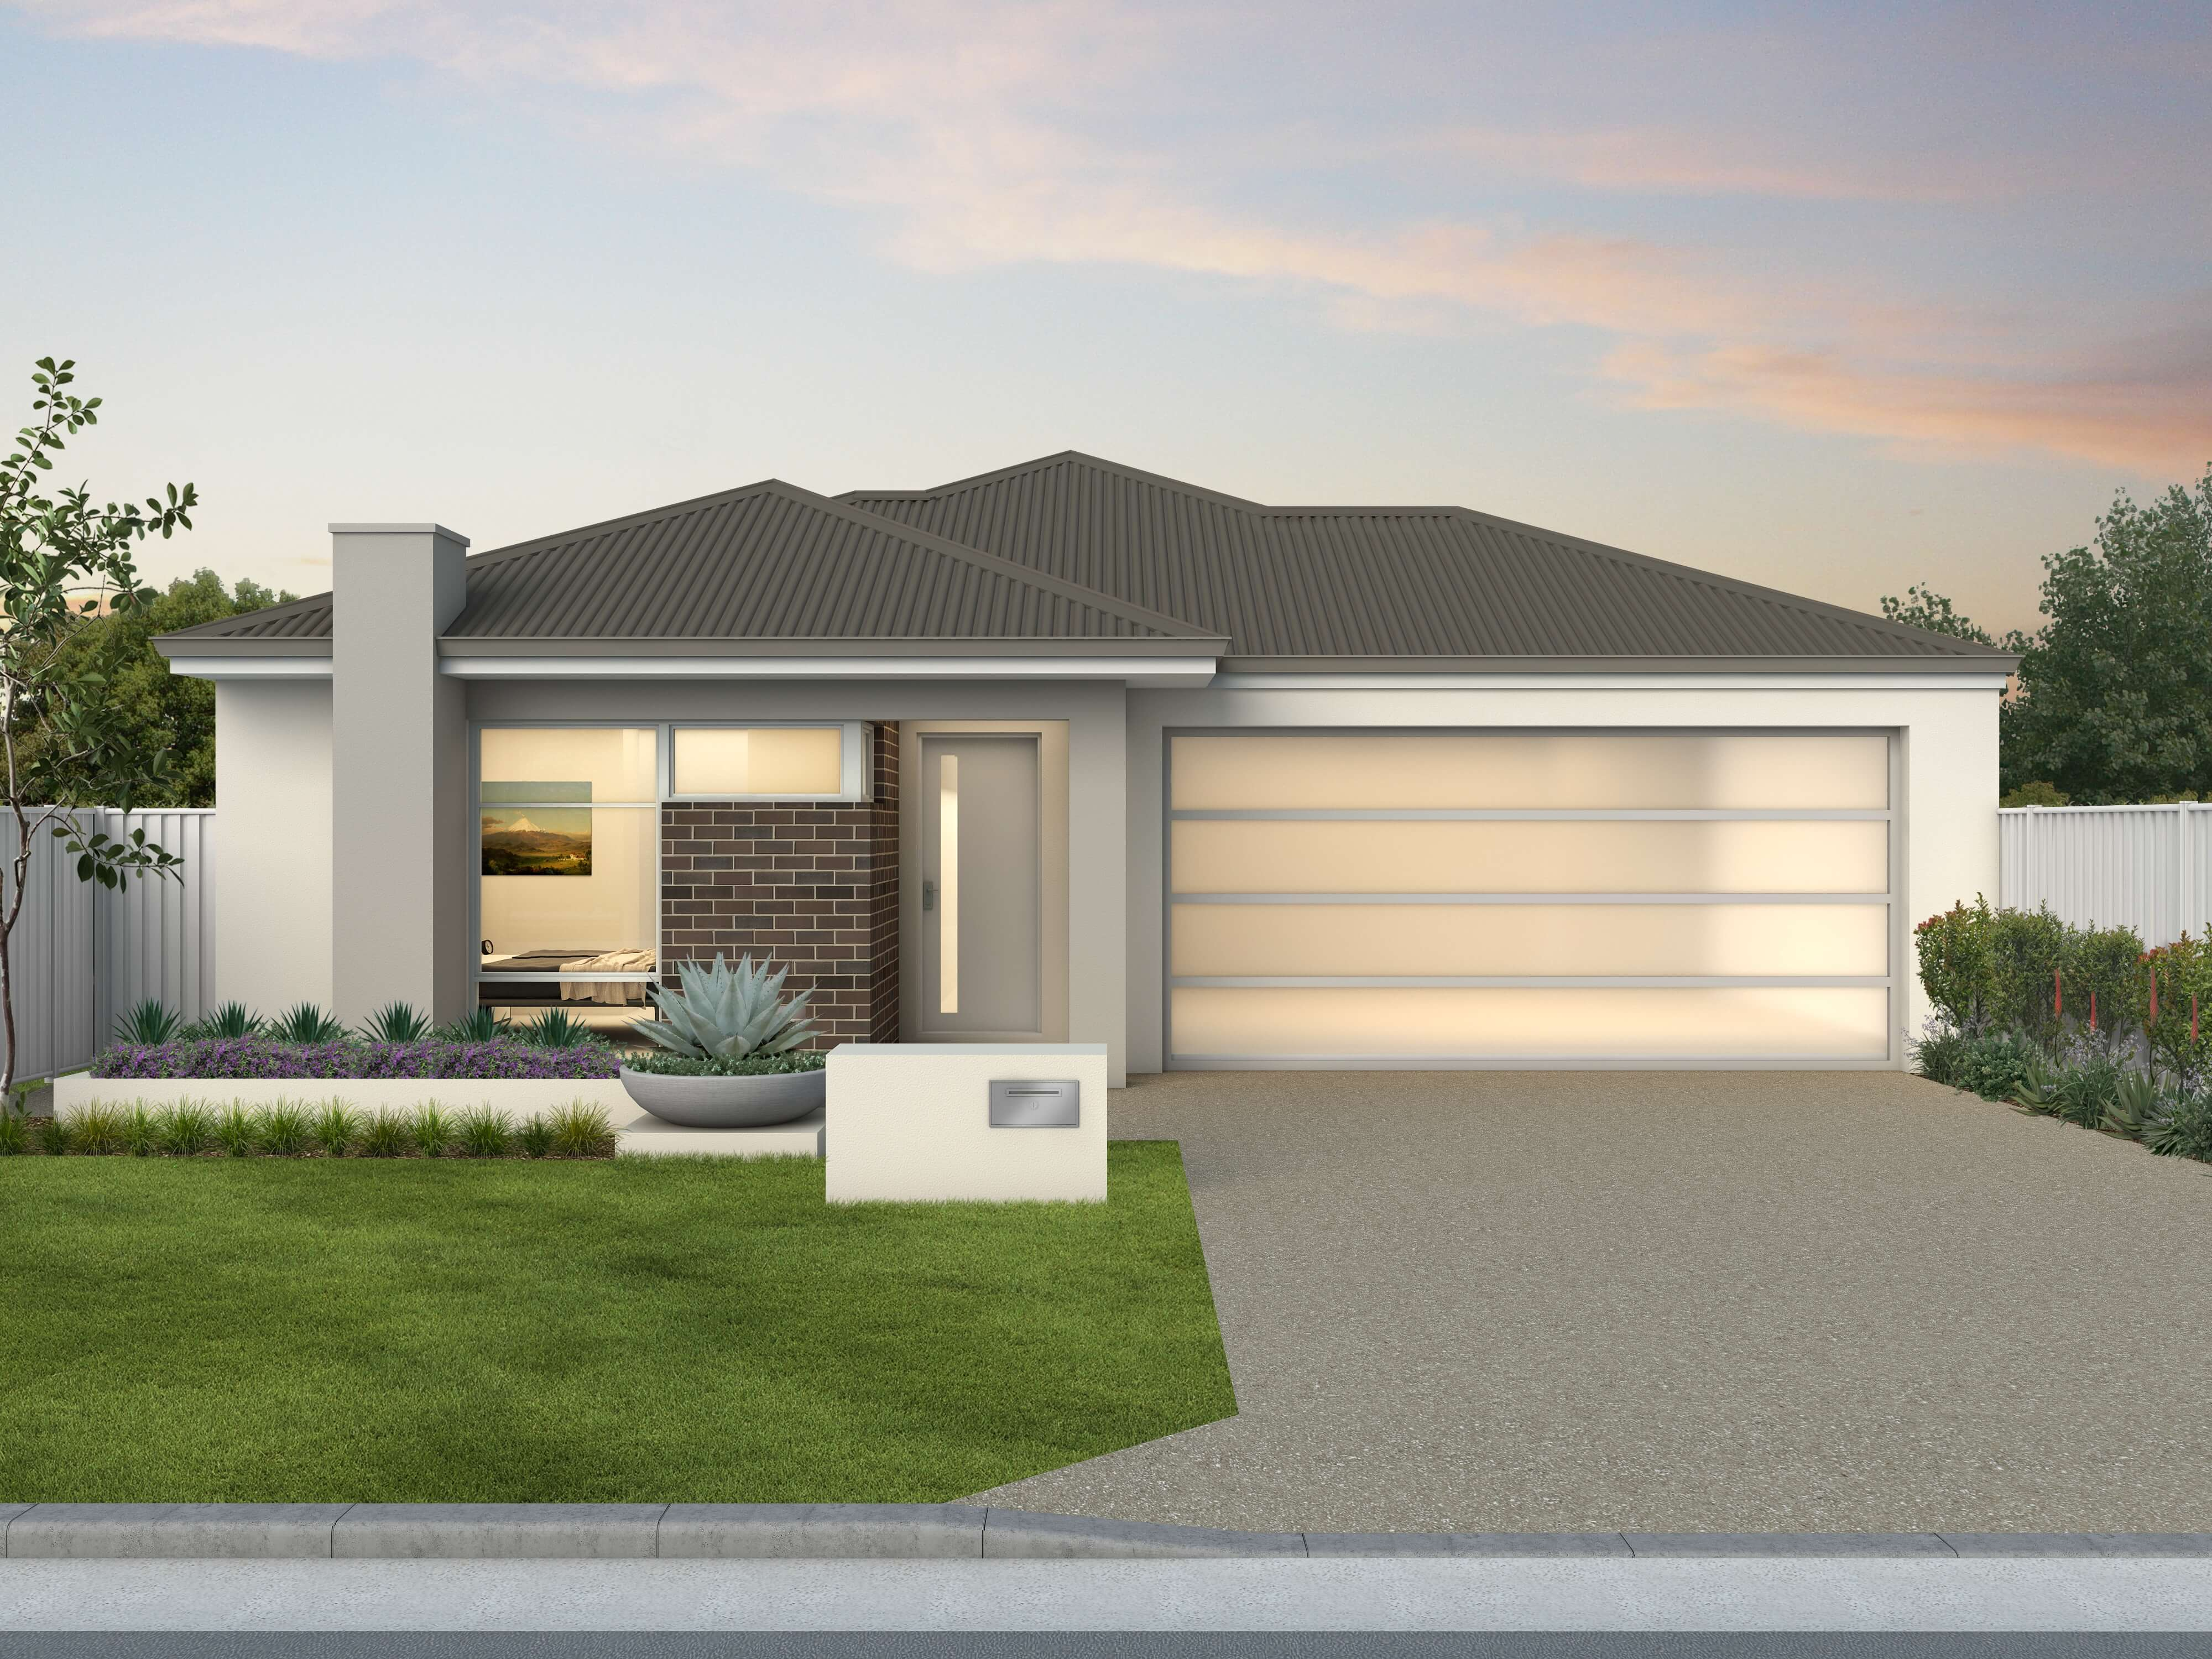 The Fuchsia, a new home design by Move Homes for Perth families and first time home buyers